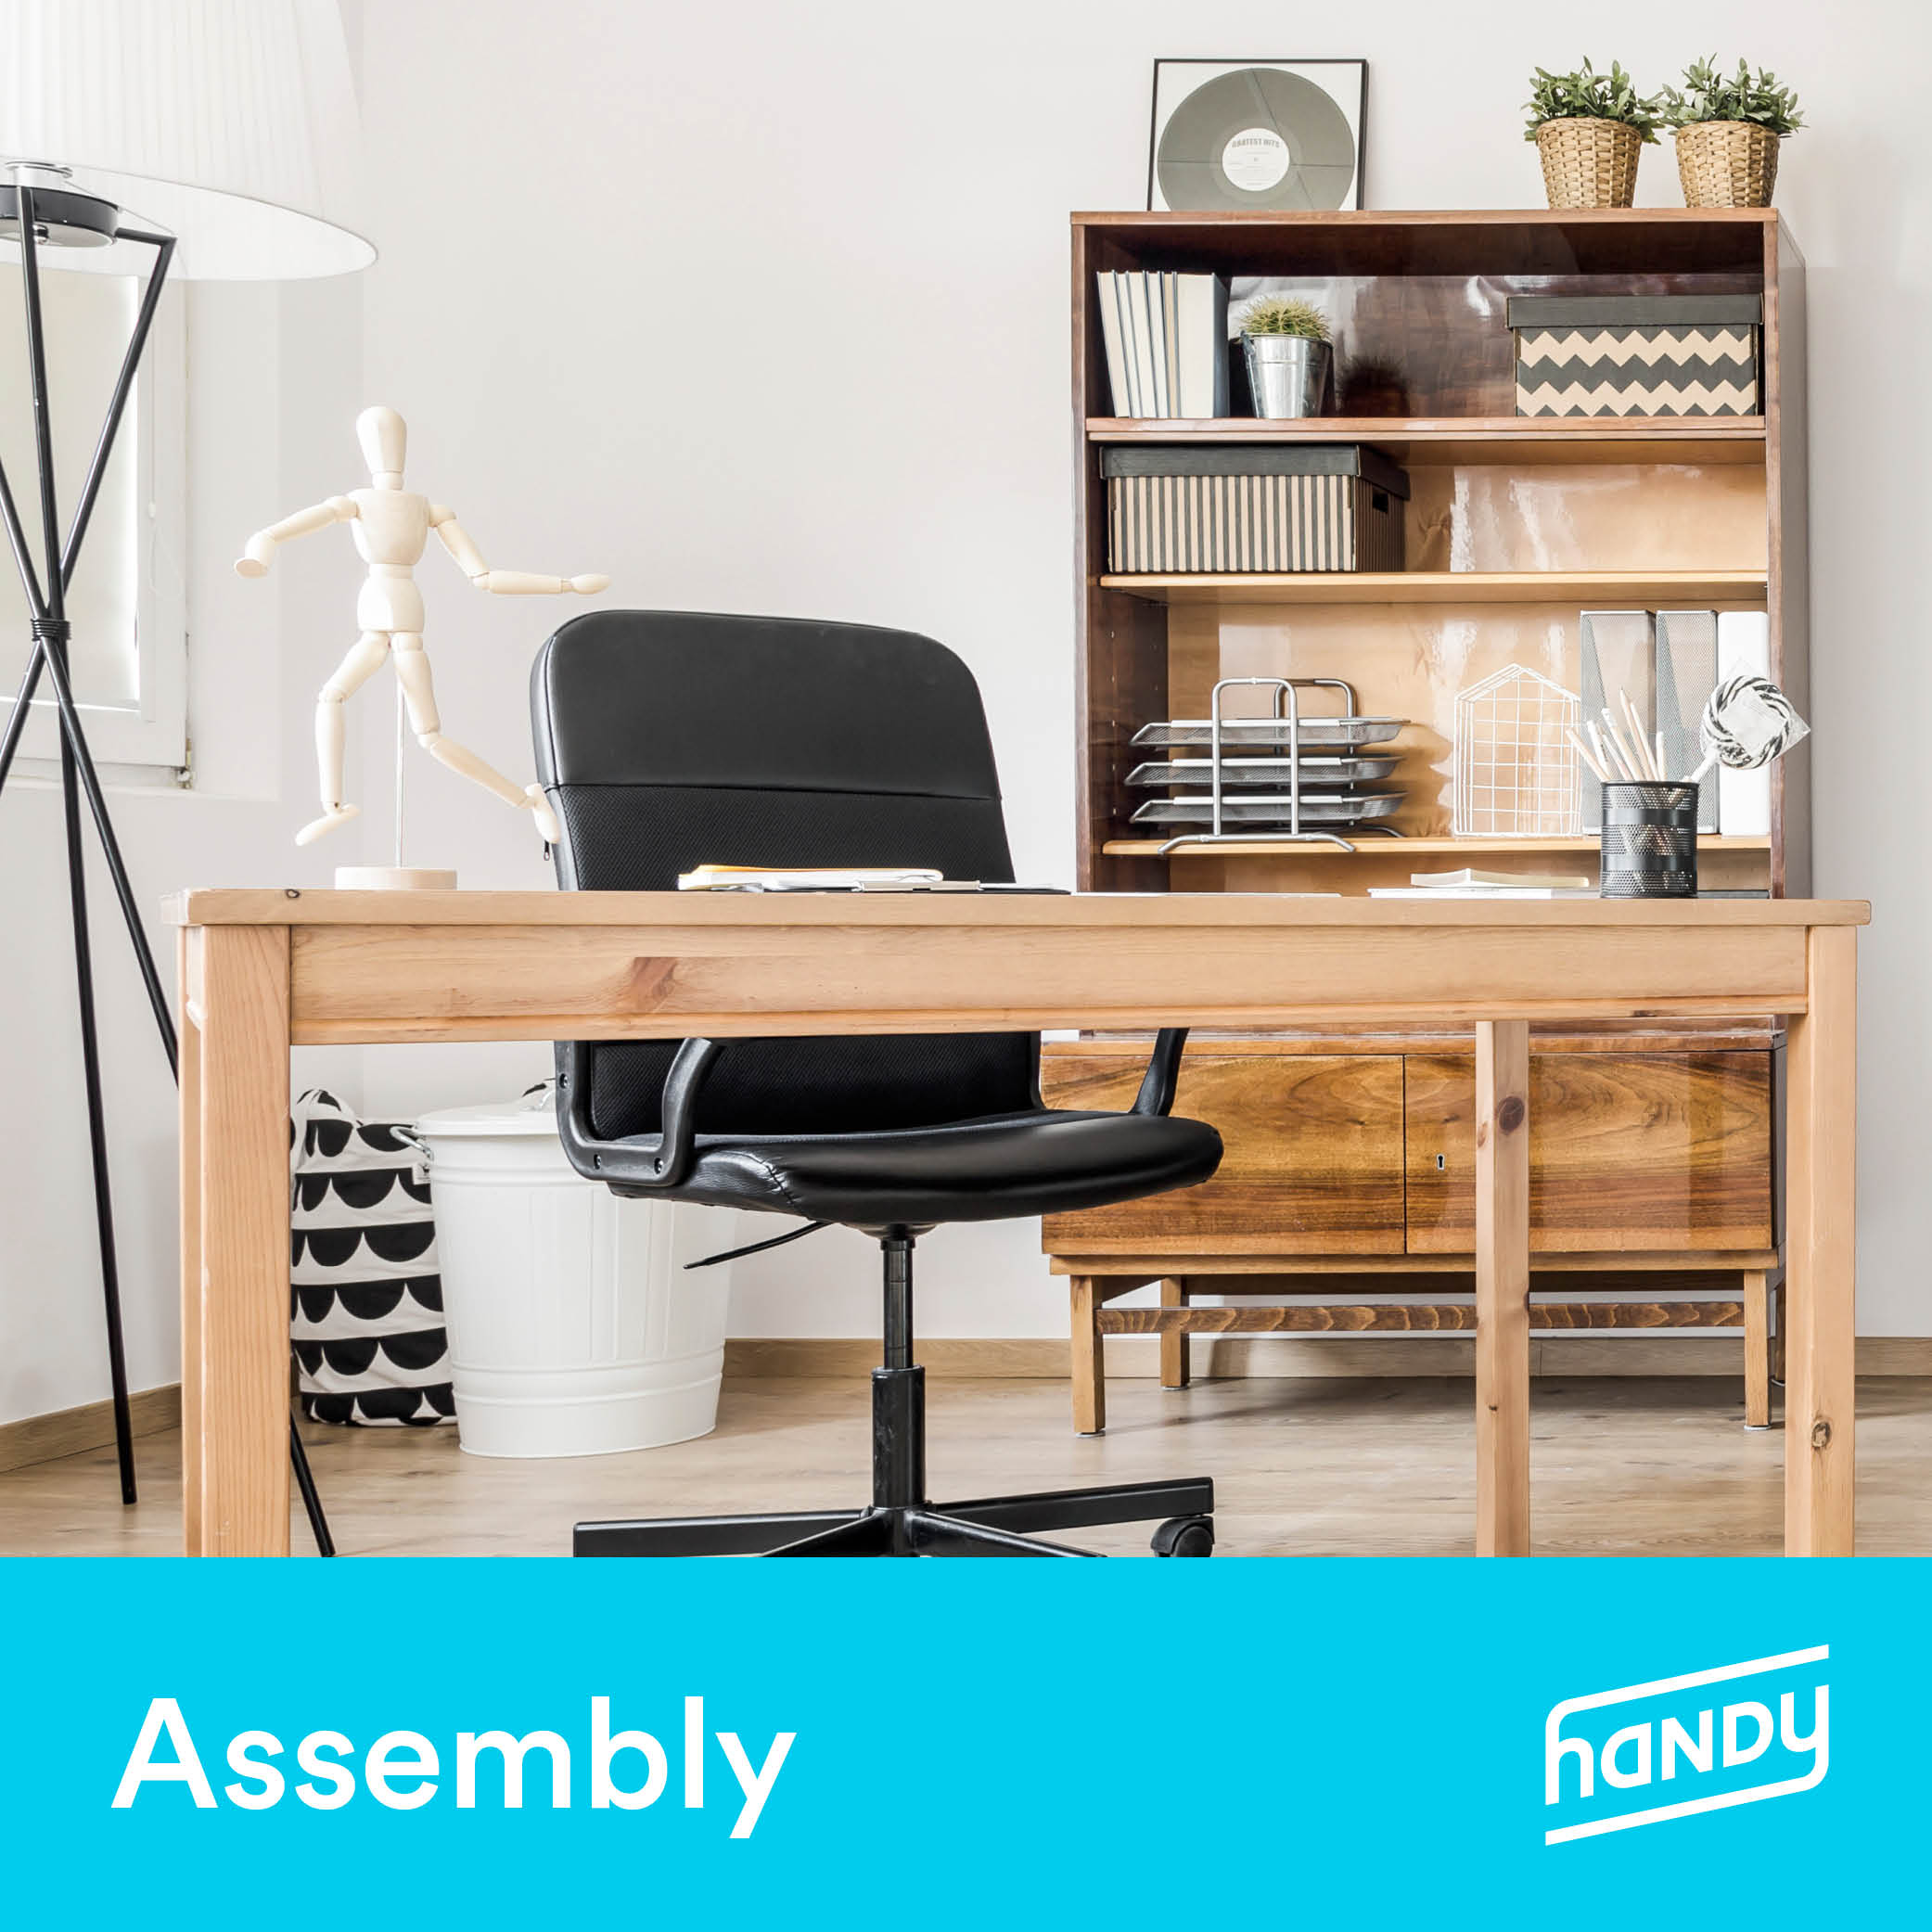 Study Room Furniture Assembly by Handy